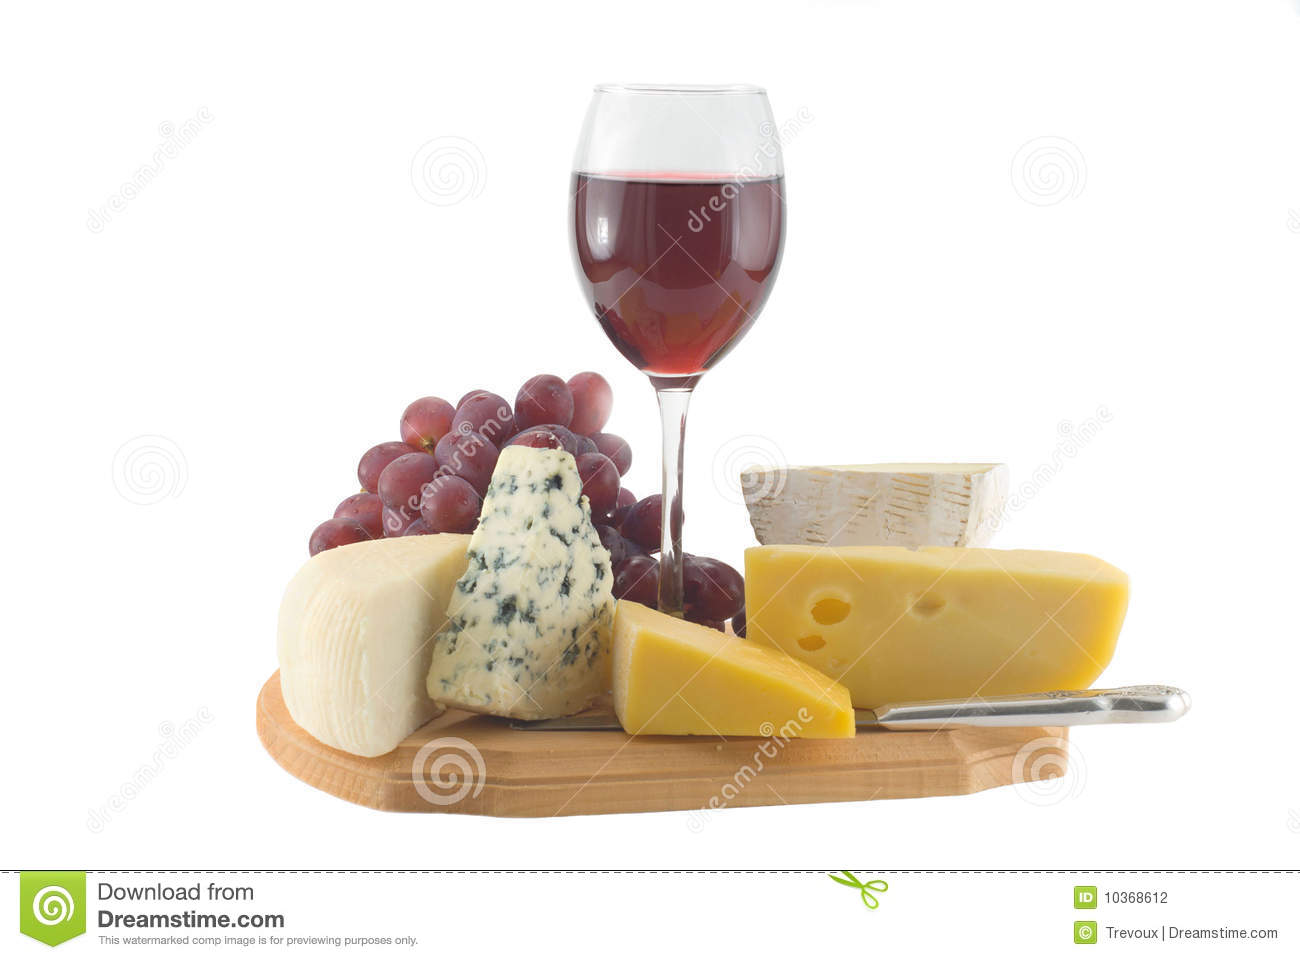 vin rouge de raisins en verre de fromage photographie stock image 10368612. Black Bedroom Furniture Sets. Home Design Ideas